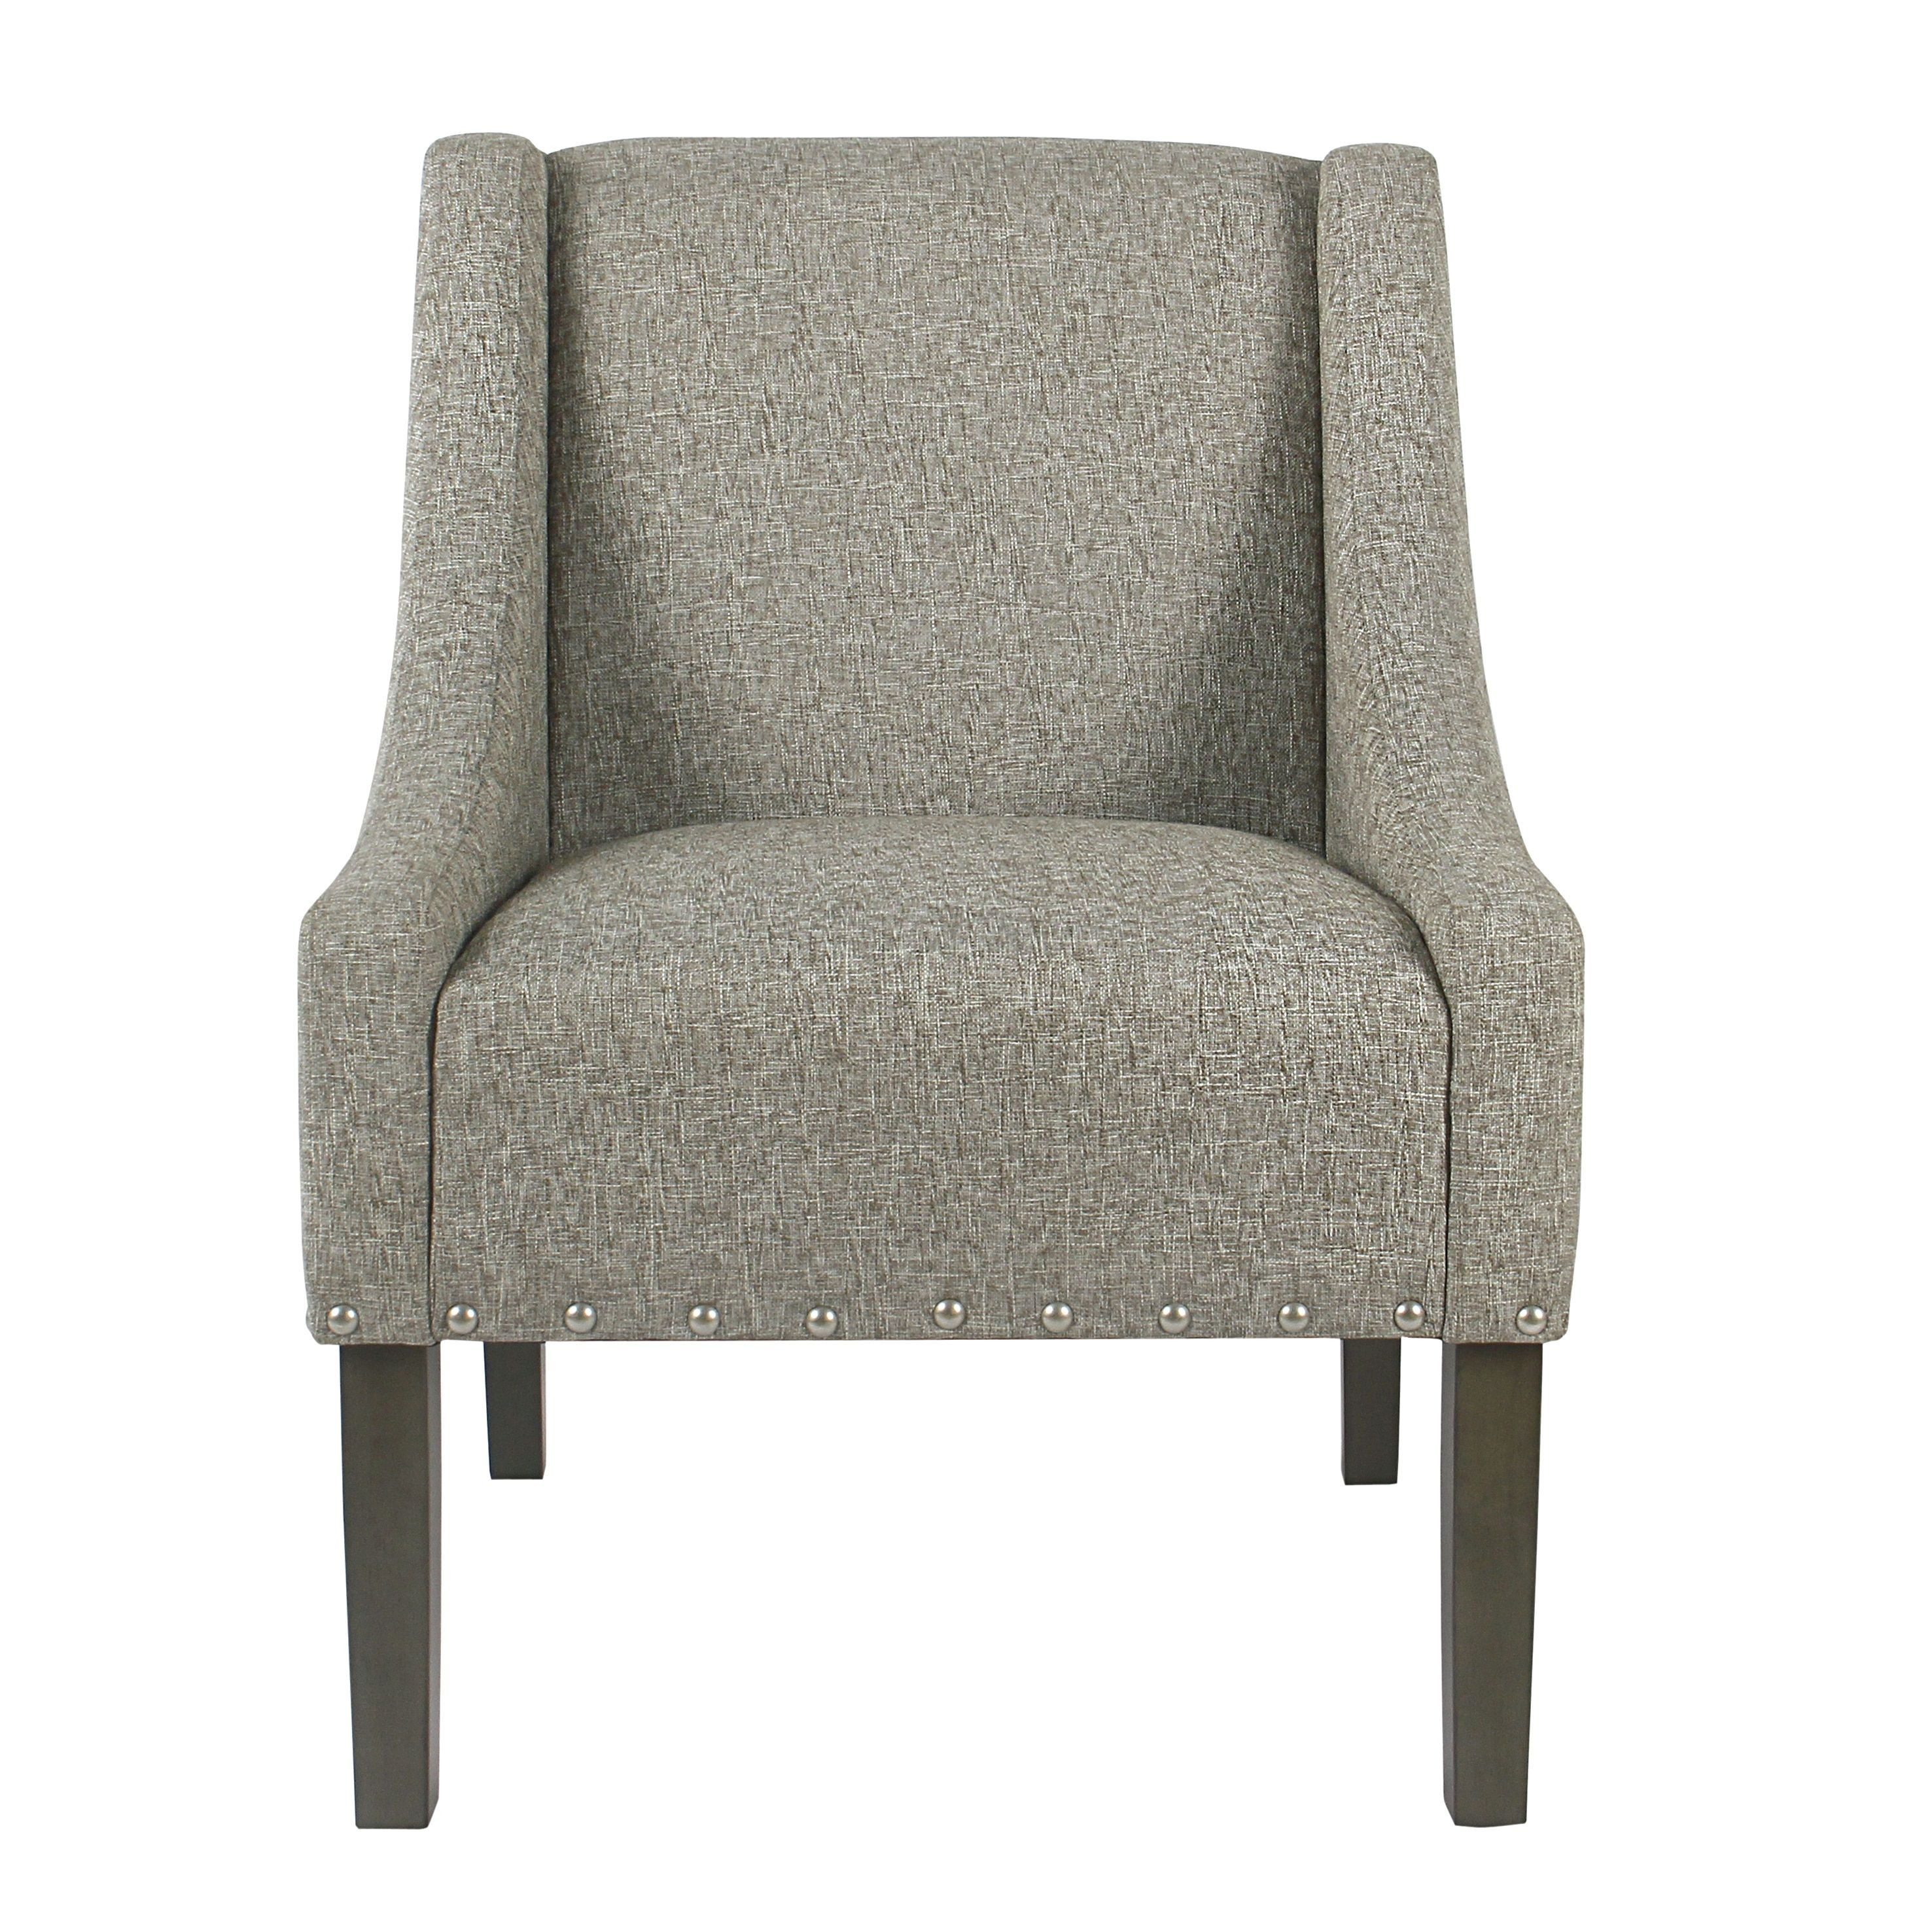 Modern Swoop Accent Chair With Nailhead Trim: Refurbished HomePop Modern Swoop Accent Chair With